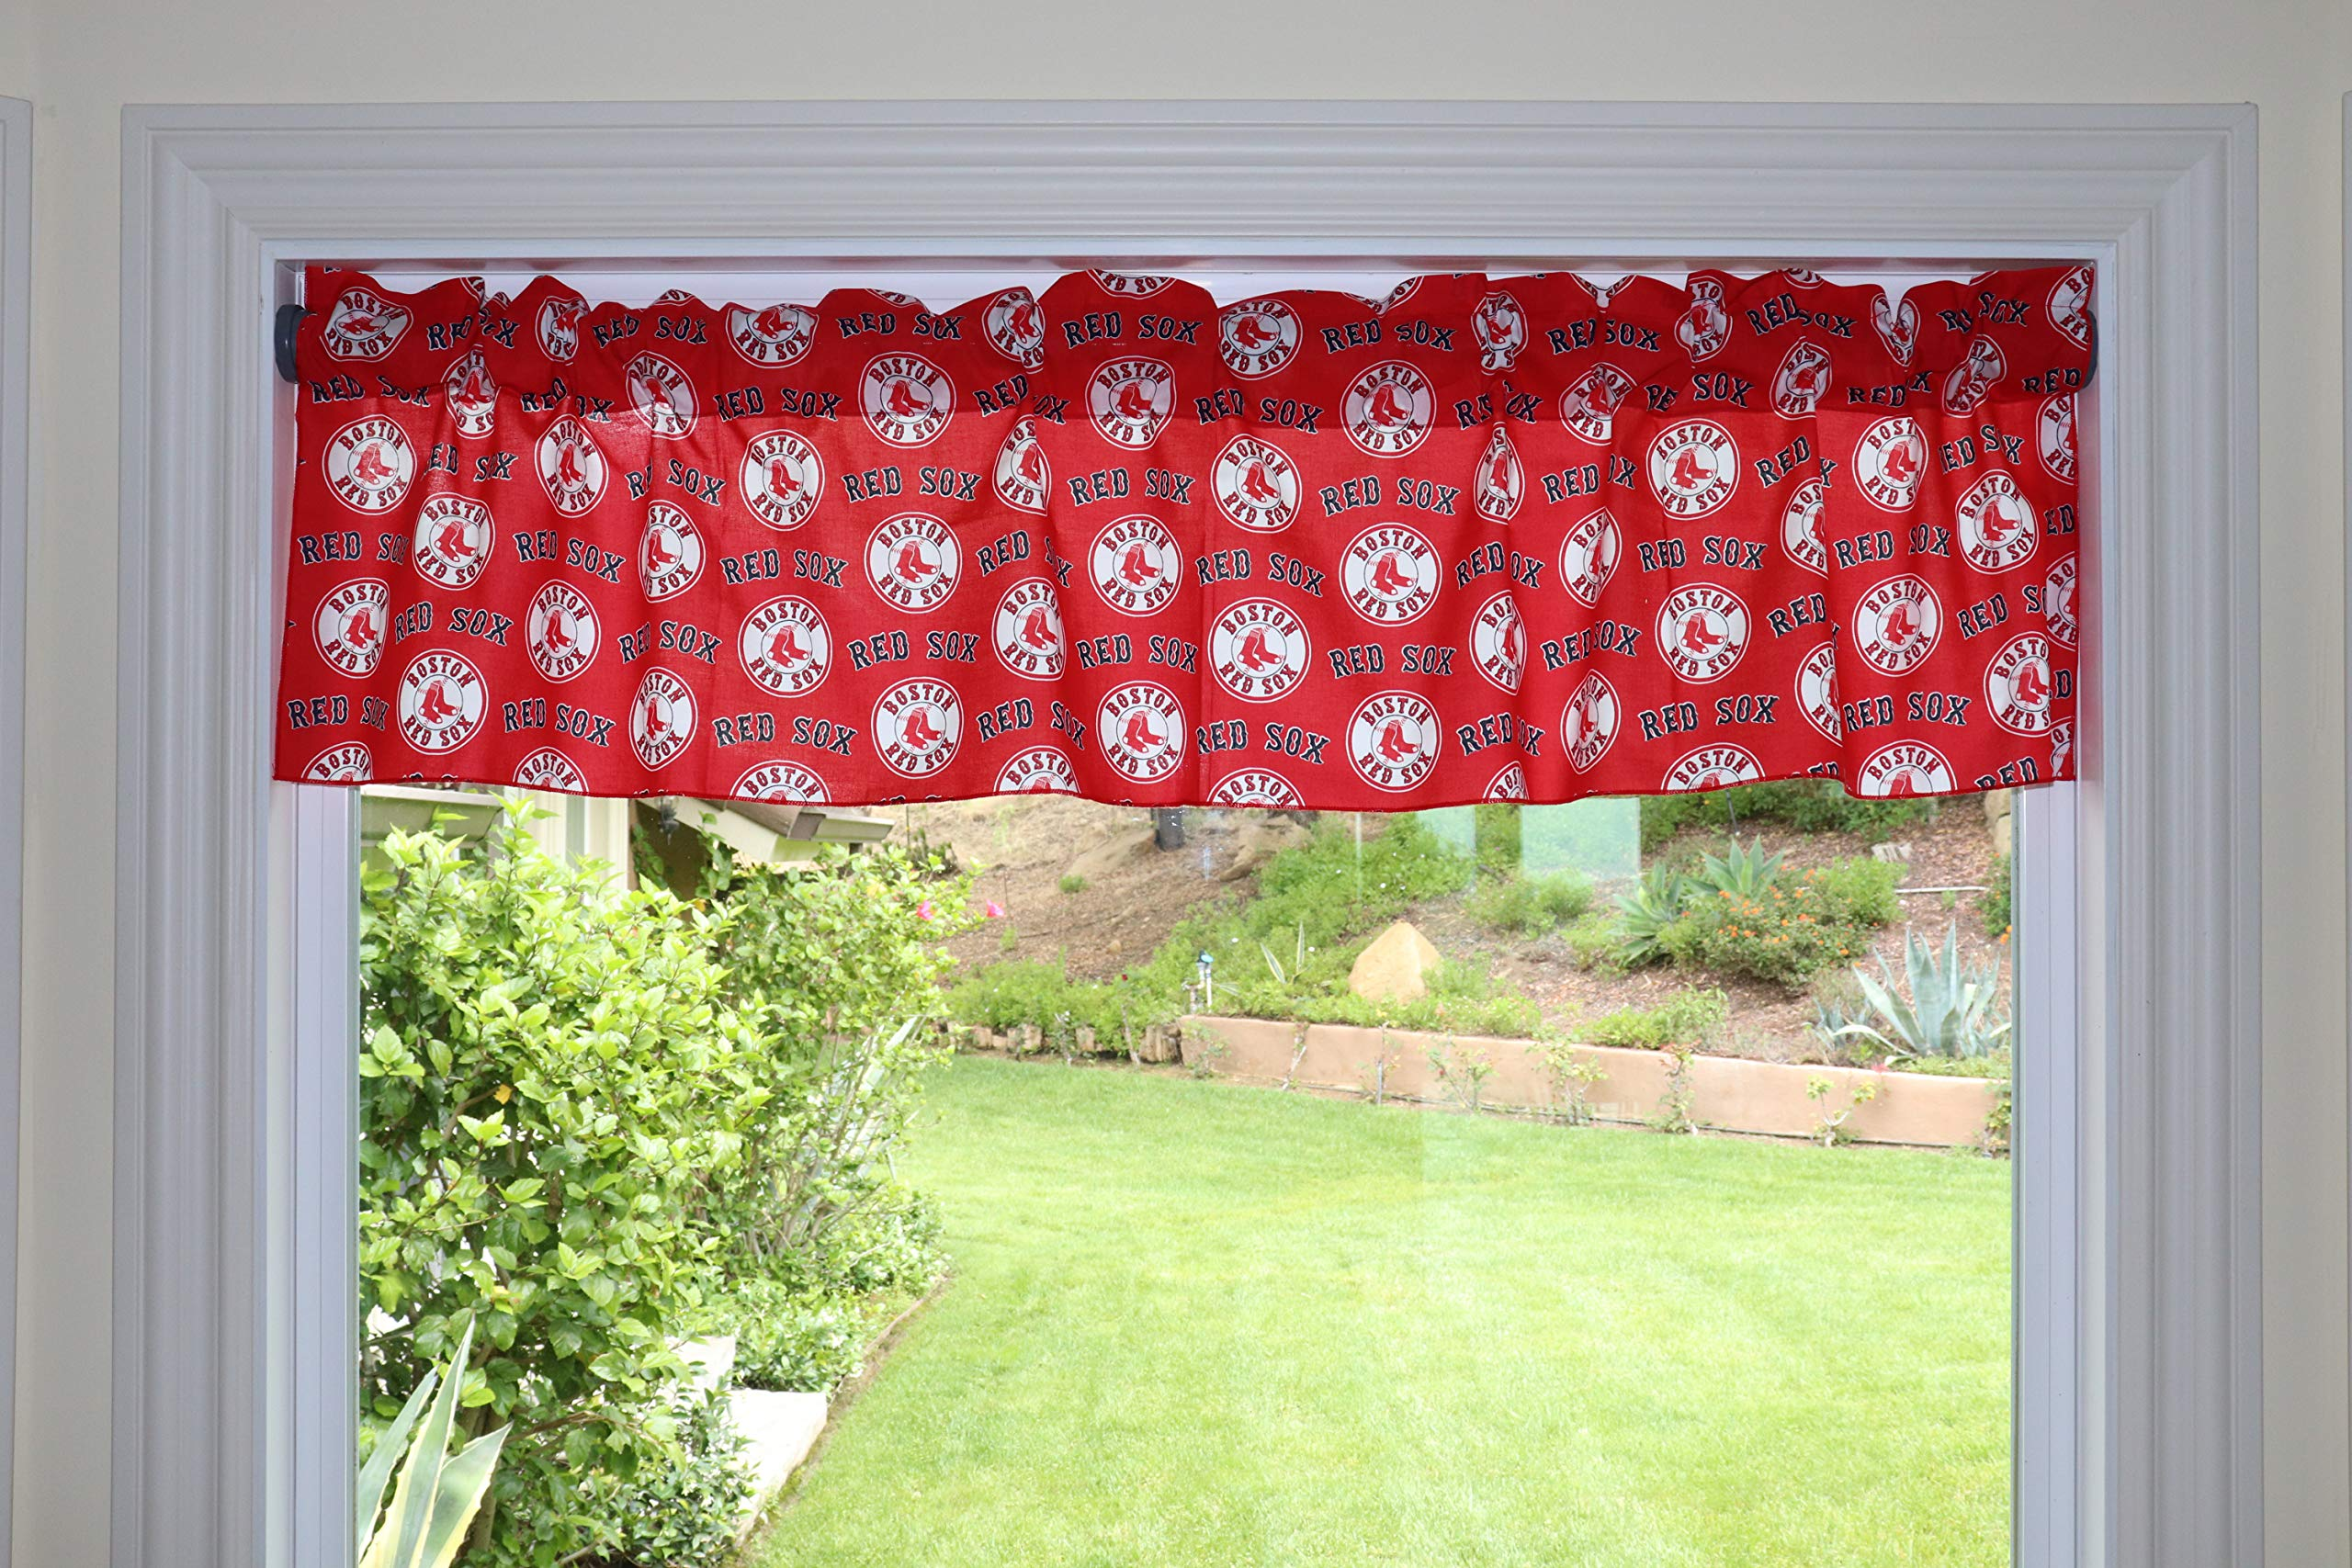 lovemyfabric Baseball Cotton Window Valance 100% Cotton Print MLB Sports Team Boston Red Sox Events Kitchen Dining Room Bedroom Window Decor (58'' Wide) (32'' Tall, Red Sox Red) by lovemyfabric